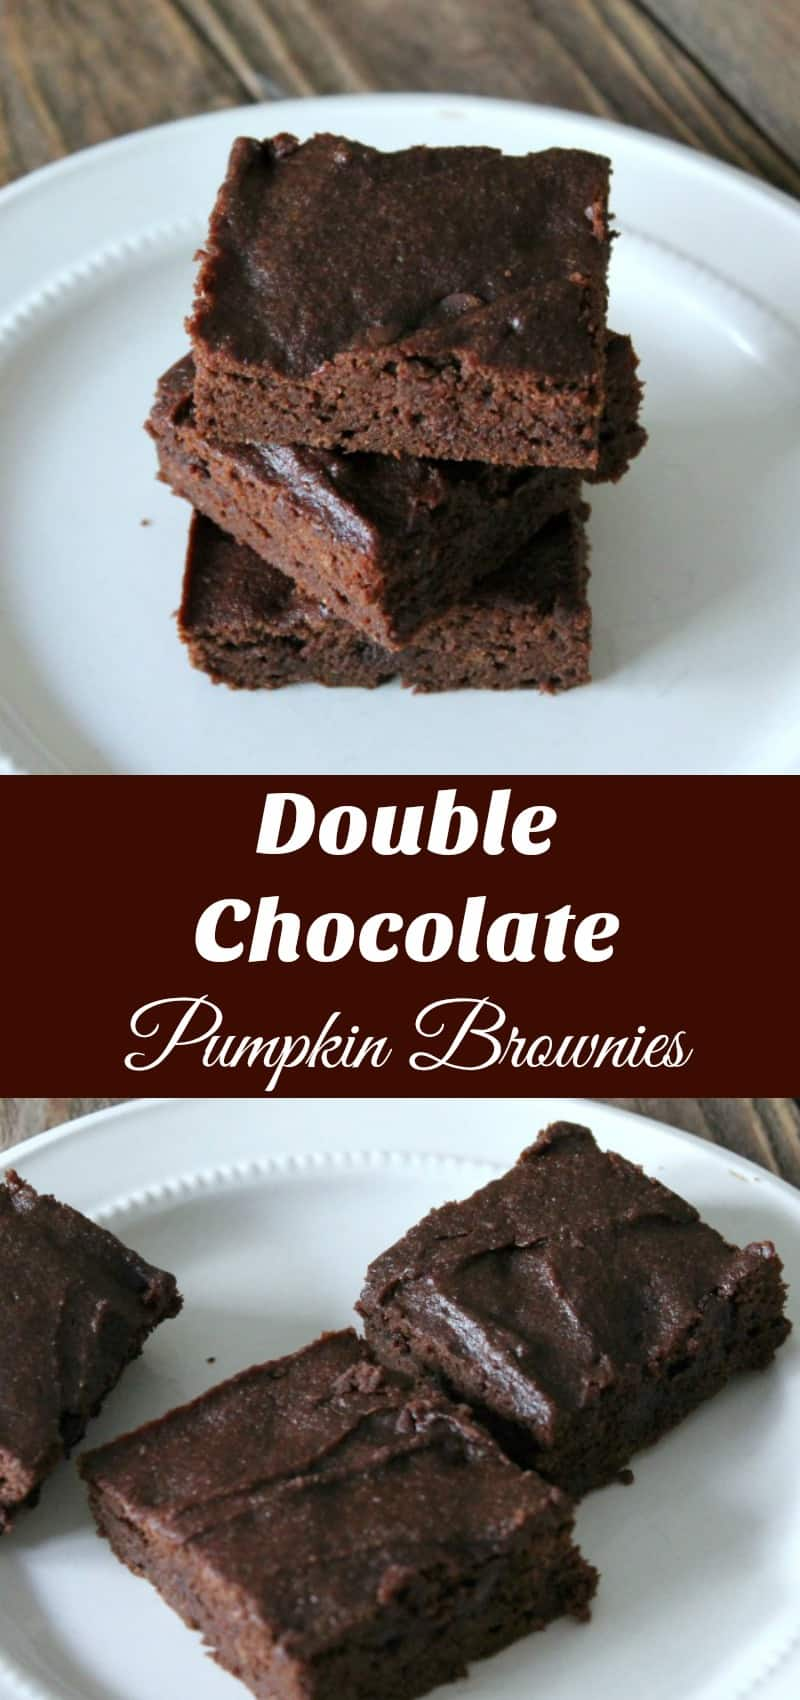 Double Chocolate Pumpkin Brownies - Organize Yourself Skinny